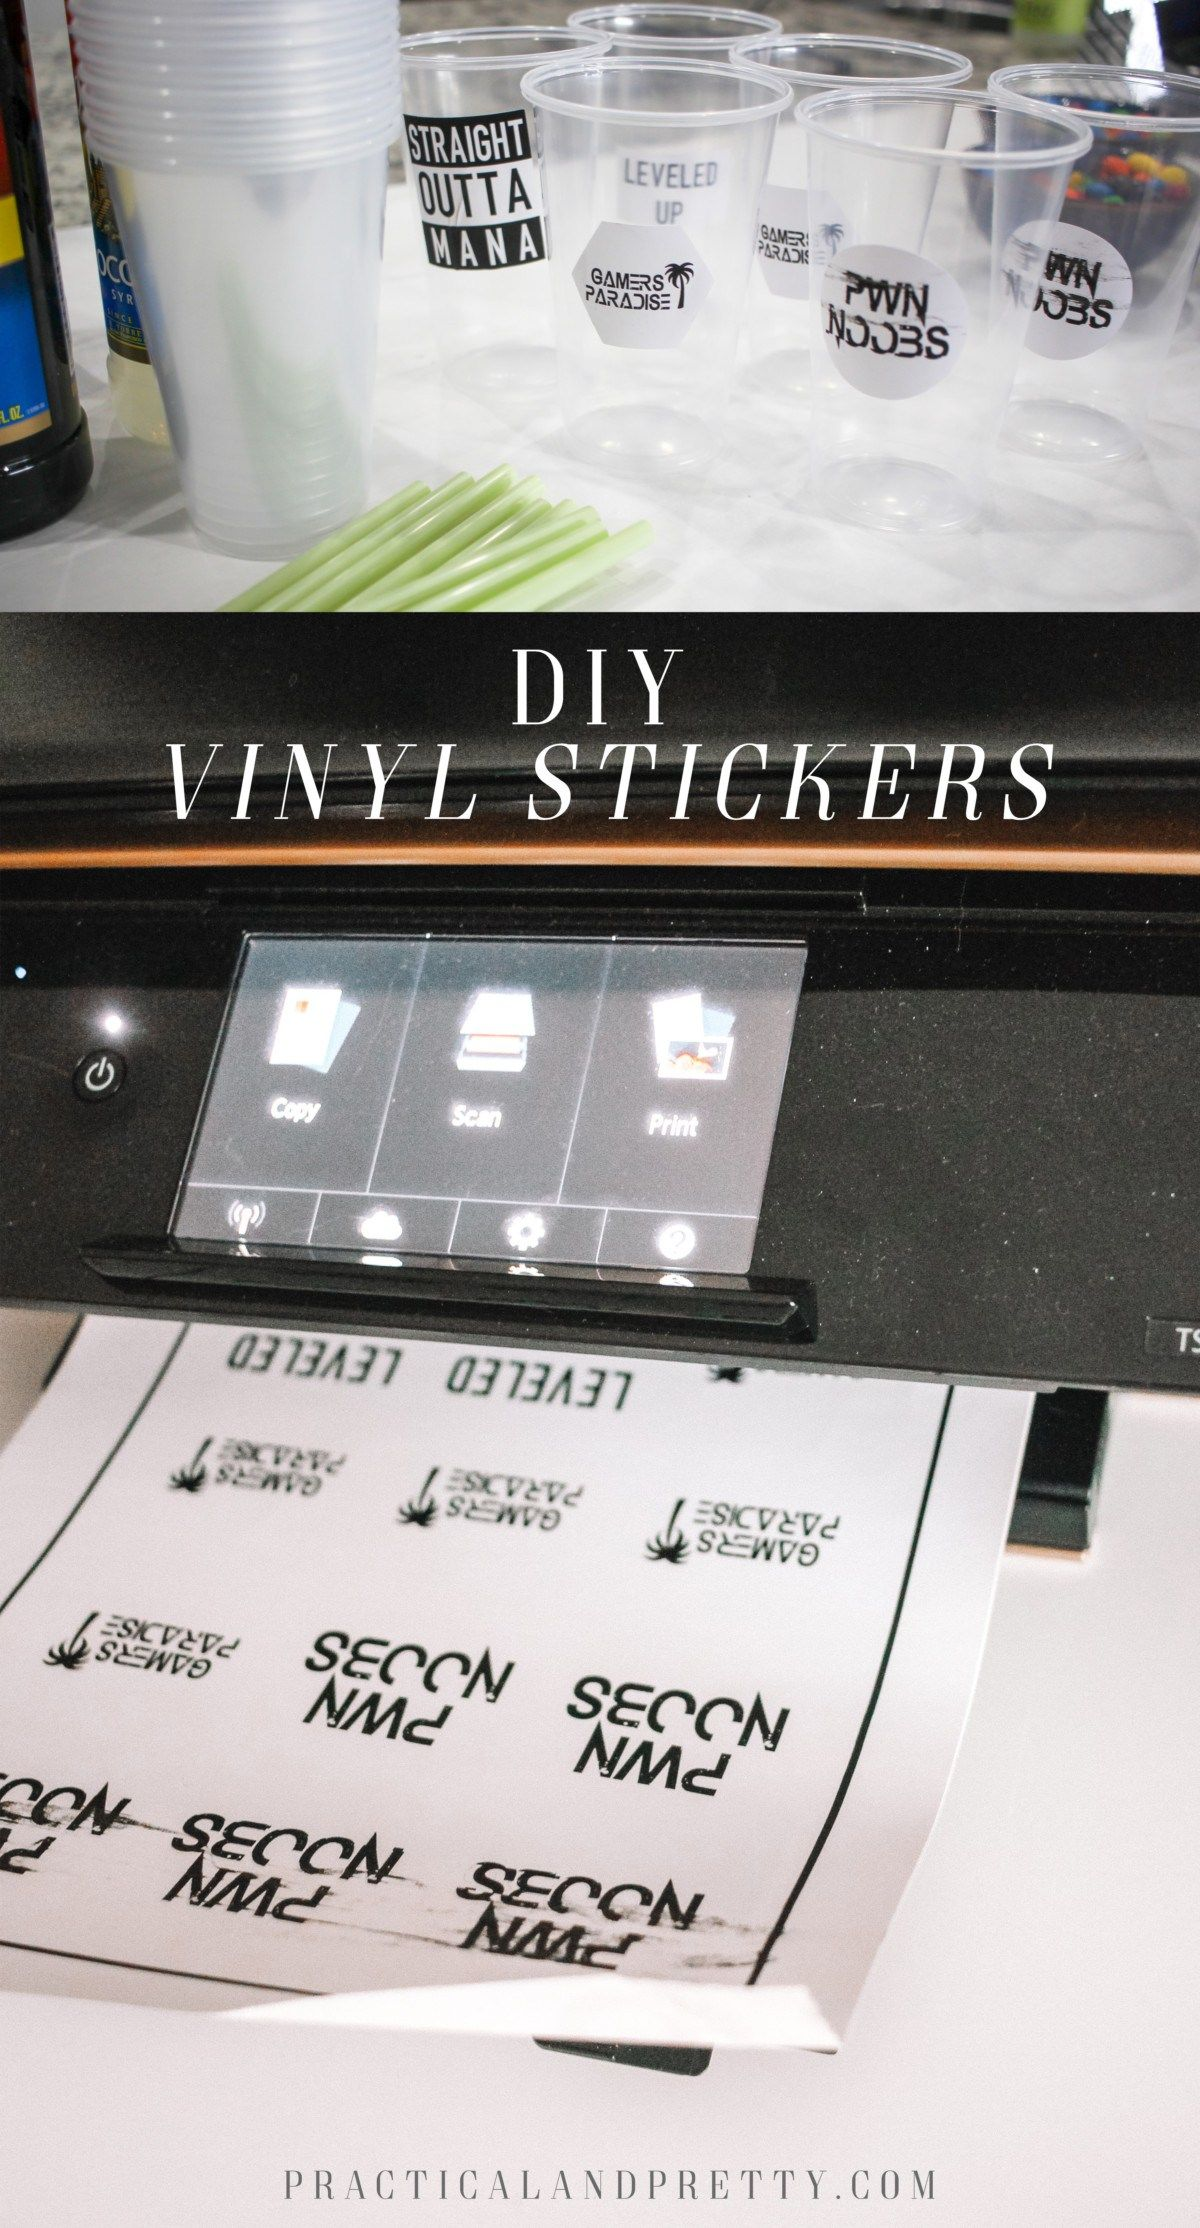 Making custom stickers is really simple with printable vinyl and ill walk you through each step so you can do it all at home for yourself